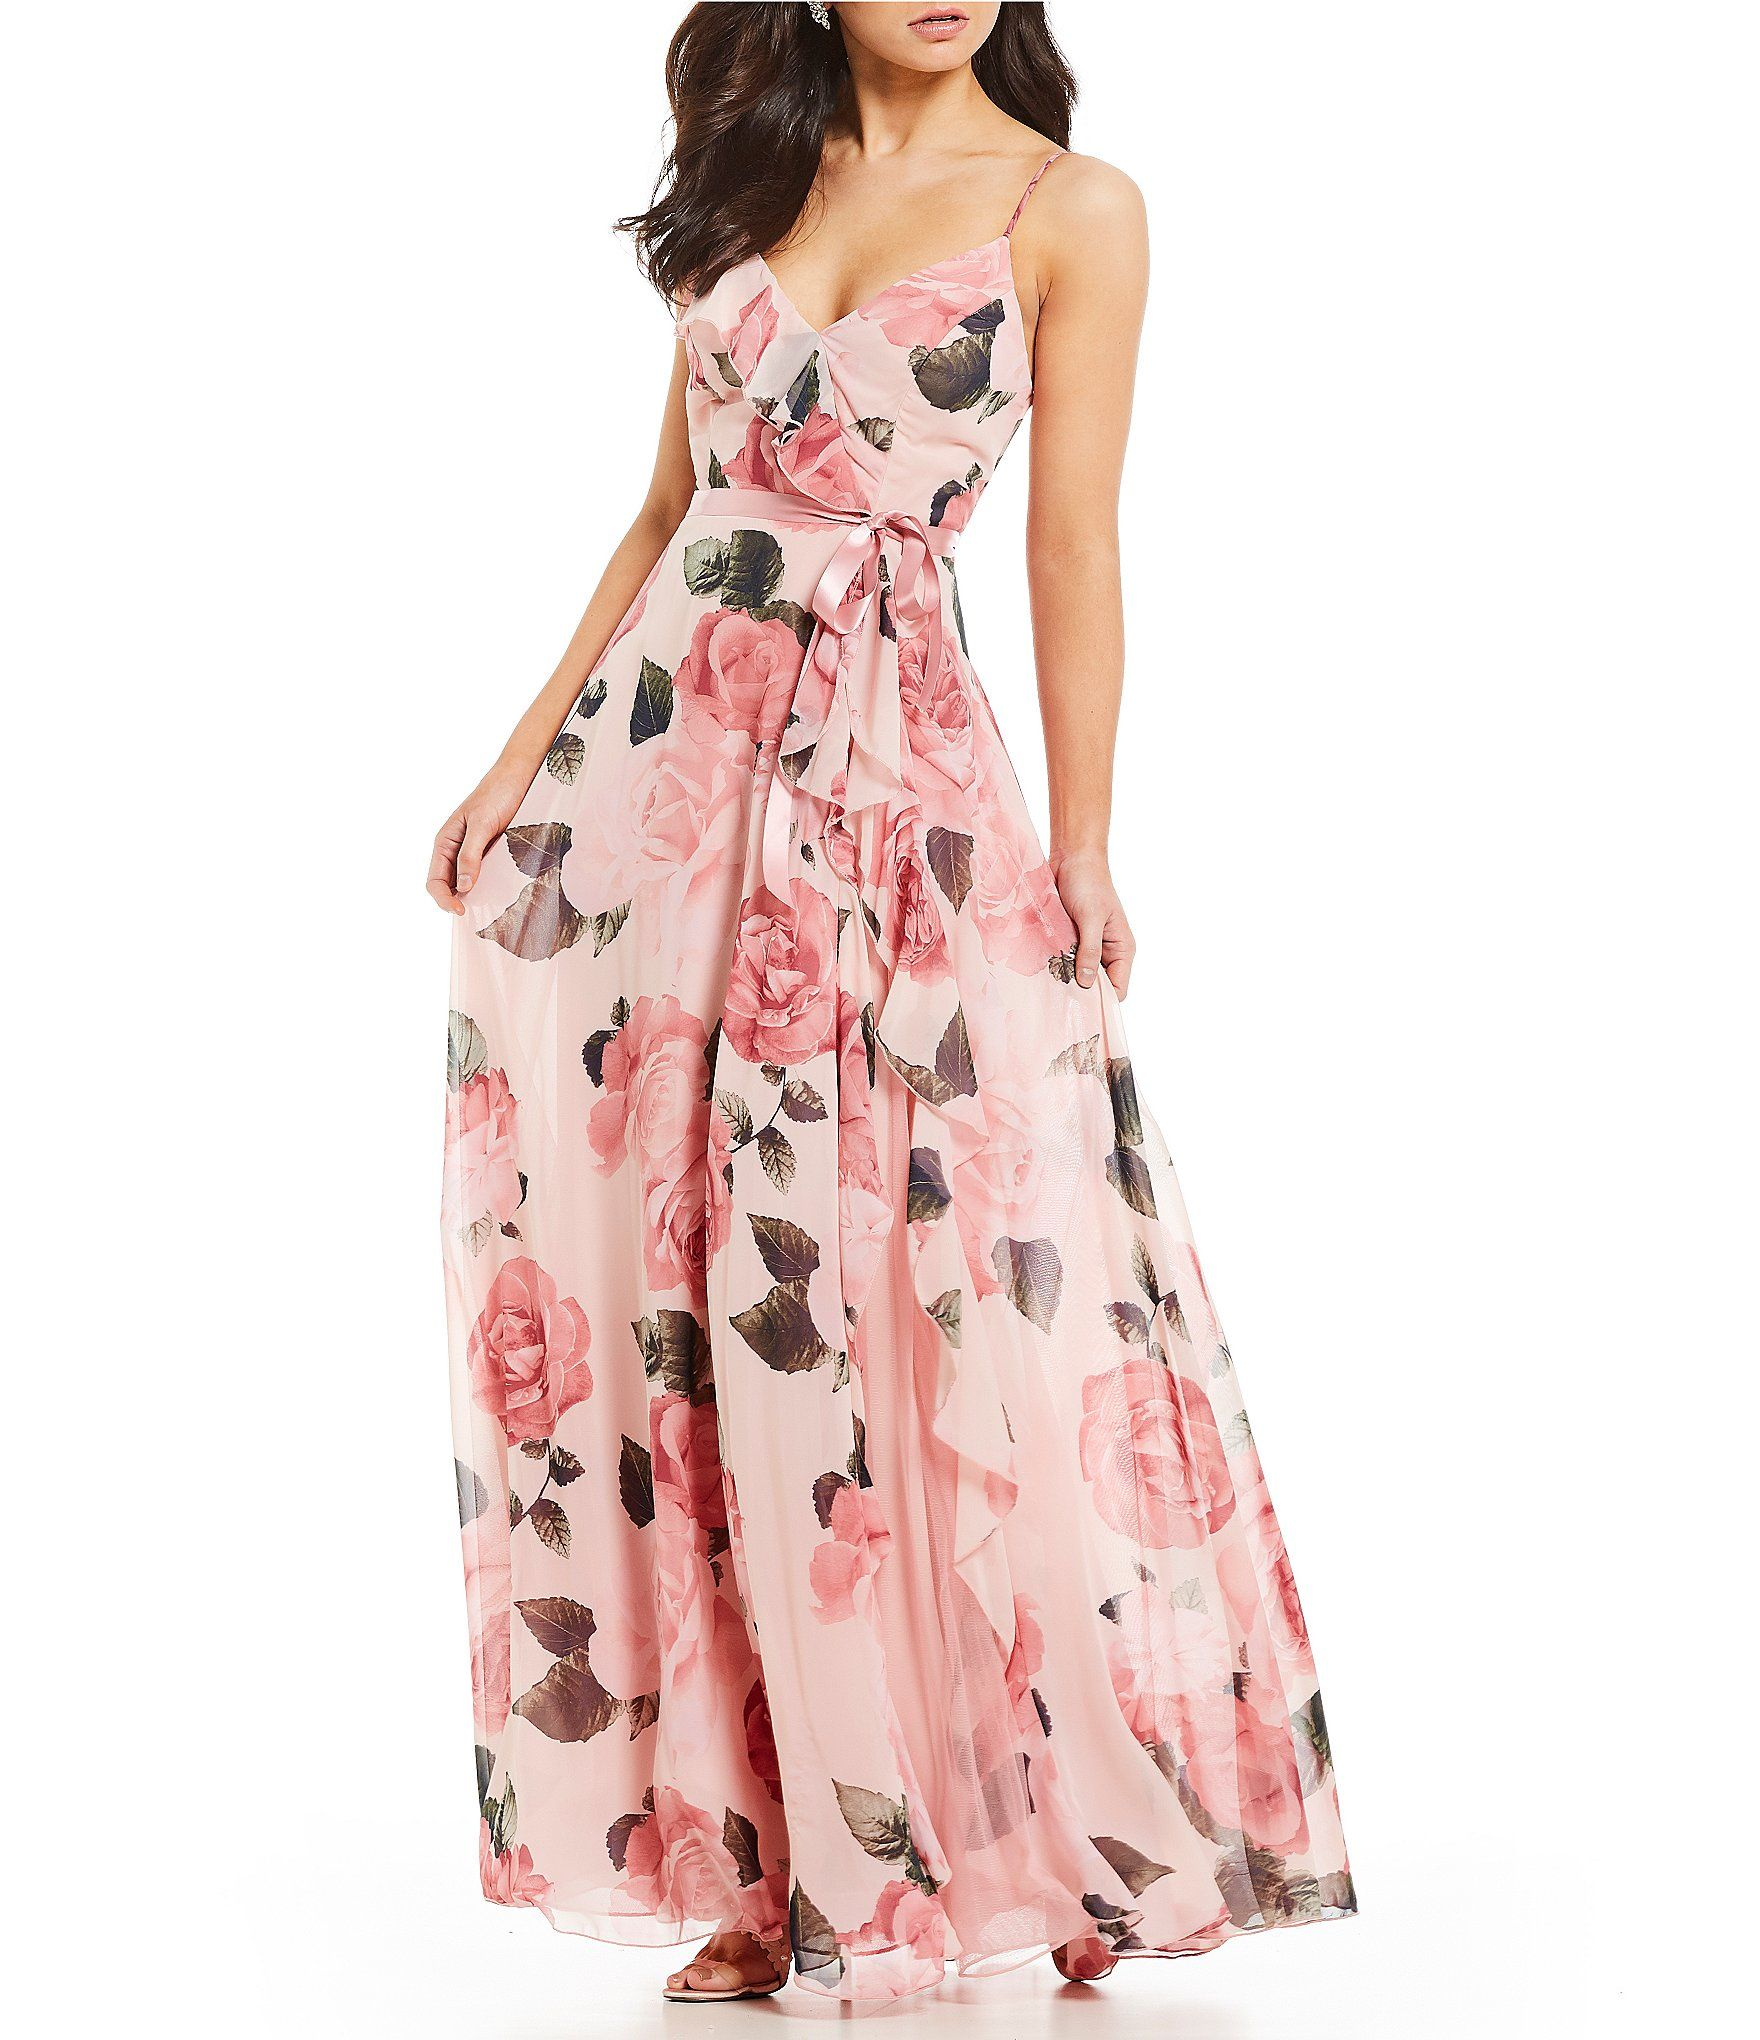 Shop For Teeze Me Floral Print Chiffon Long Dress At Dillards Com Visit Dillards Com To Find Floral Dresses Long Chiffon Dress Long Floral Bridesmaid Dresses